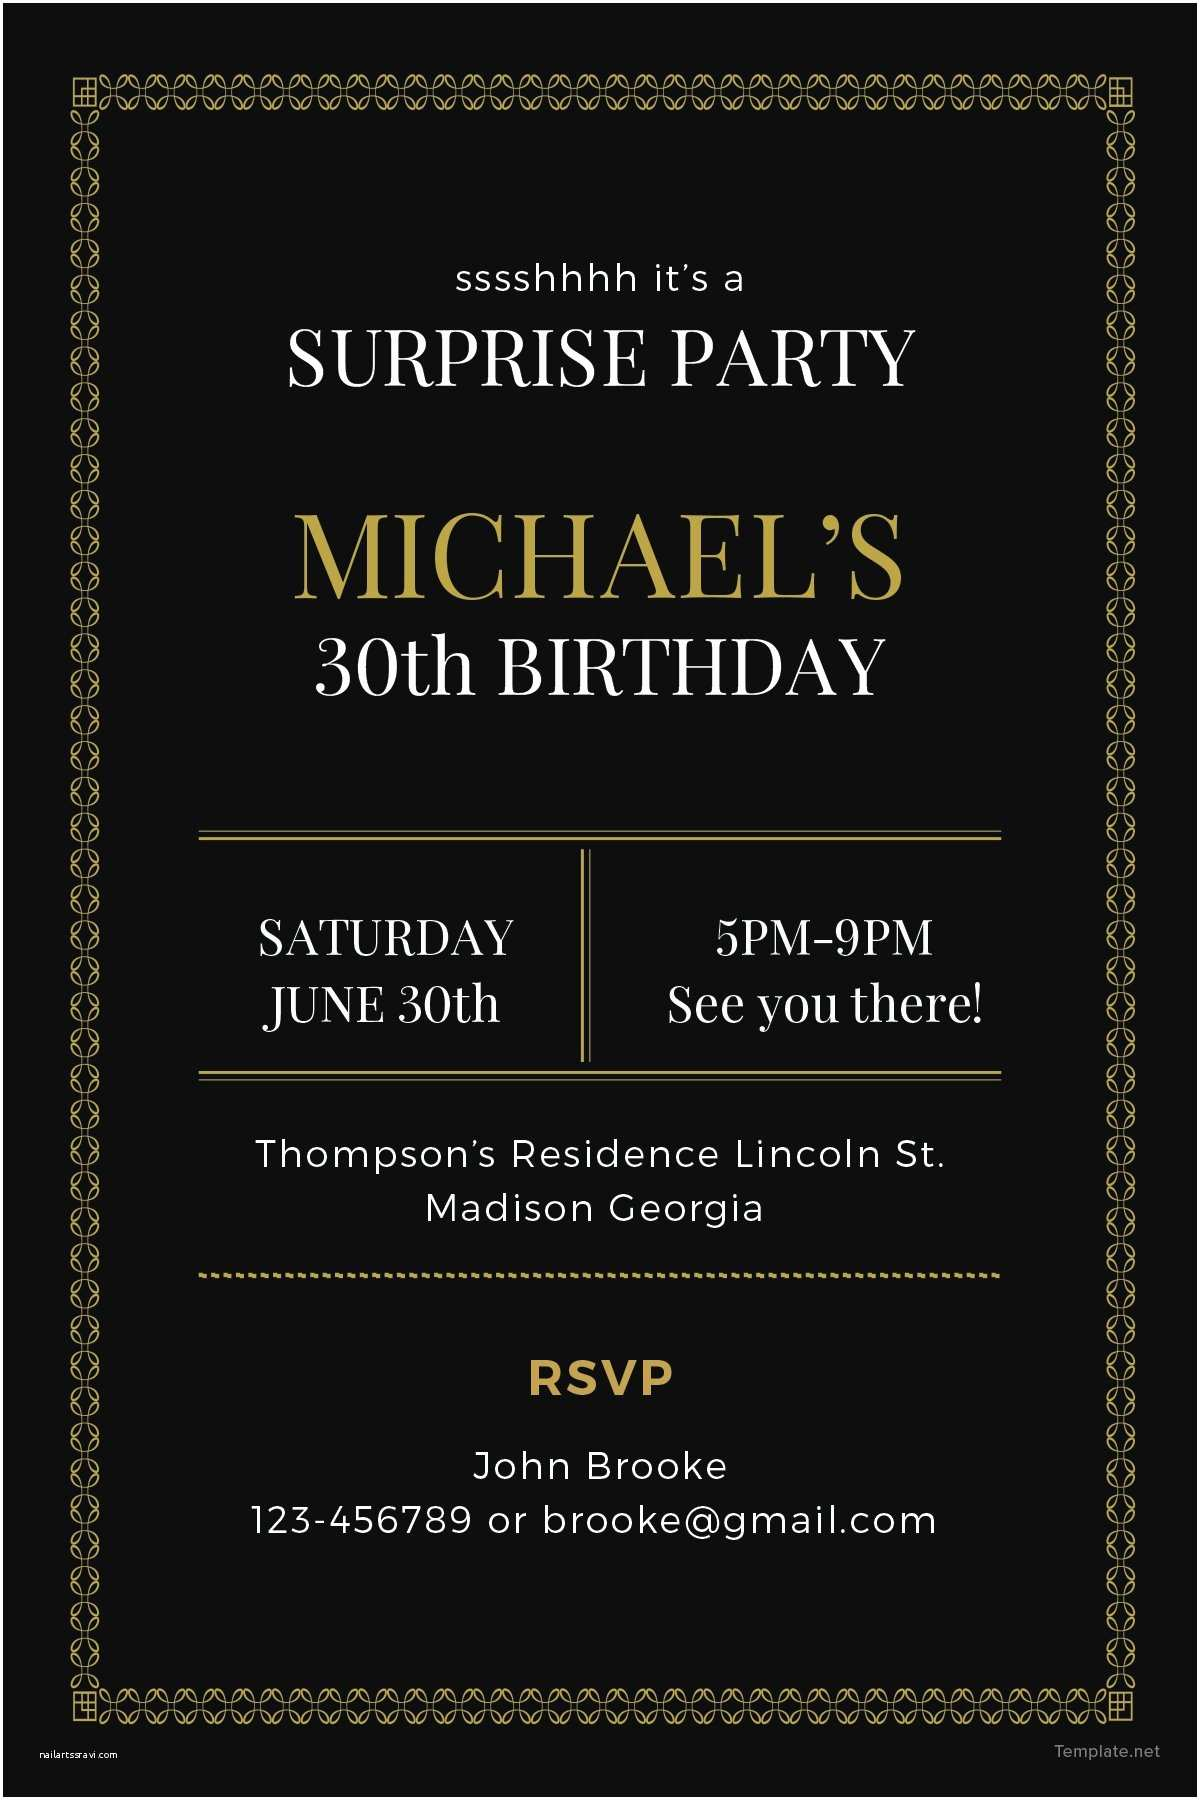 Surprise Party Invitation Template Free Surprise Party Invitation Template In